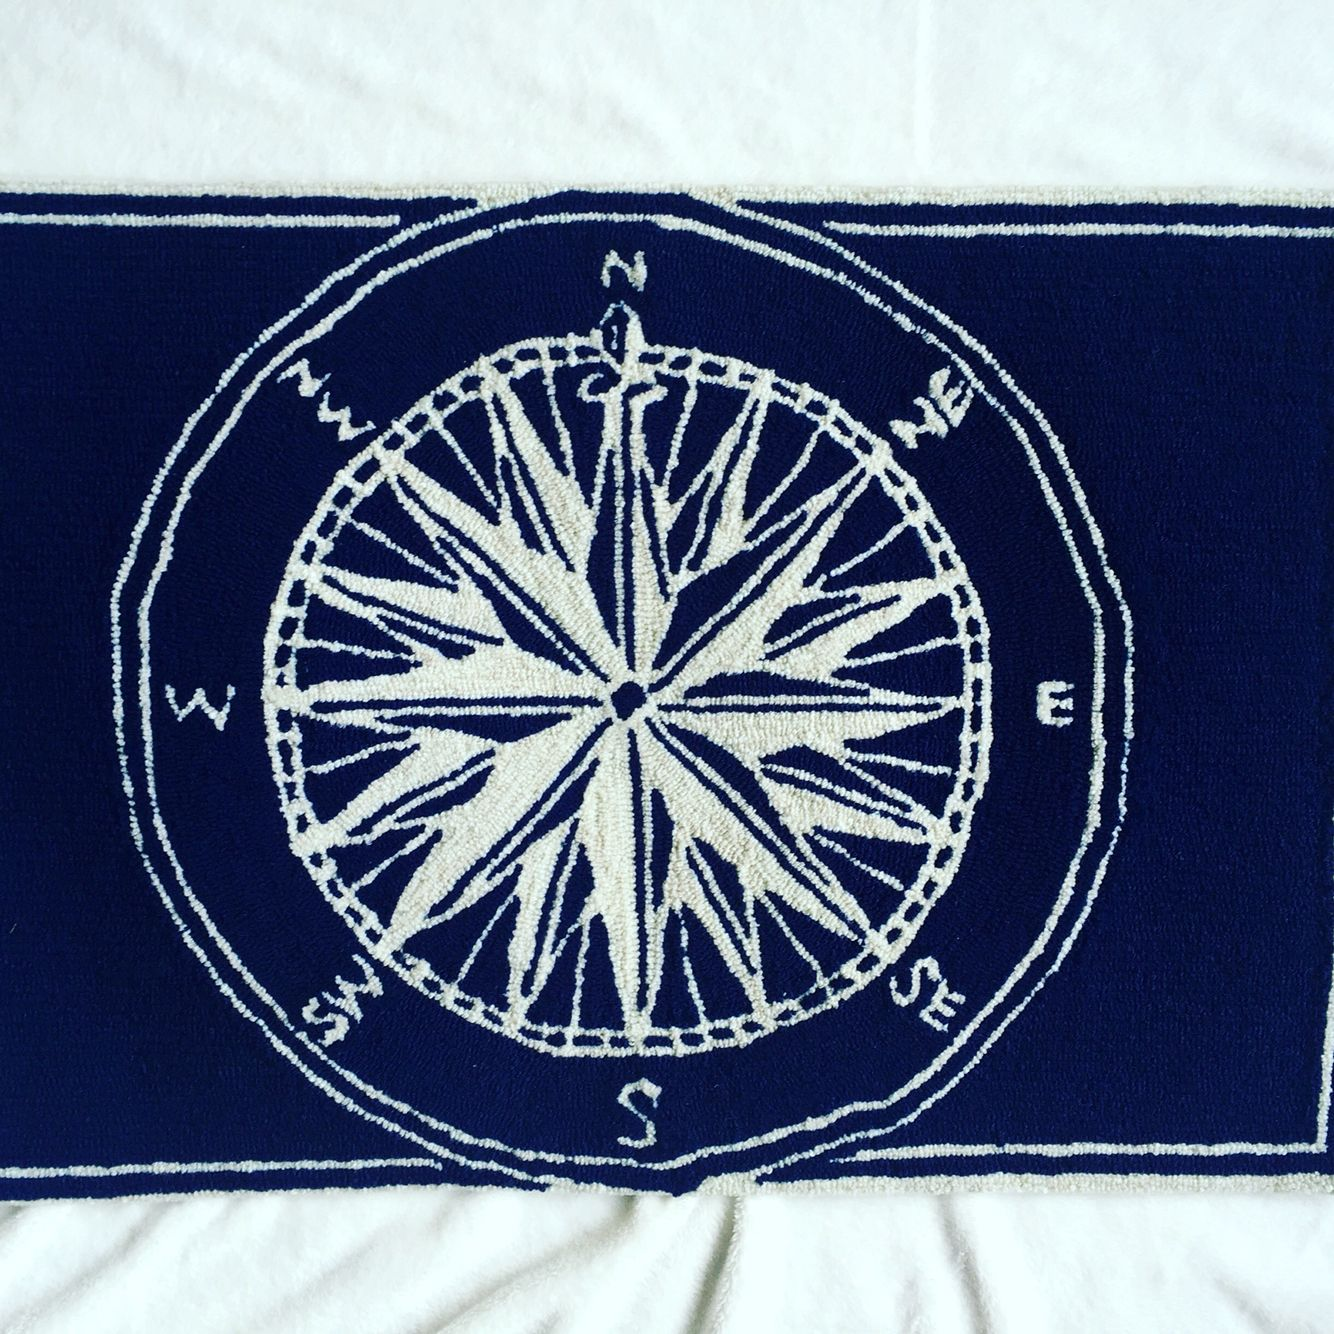 Nautical rugs for bathroom - Compass Rise Nautical Rug From Kohl S For Master Bathroom